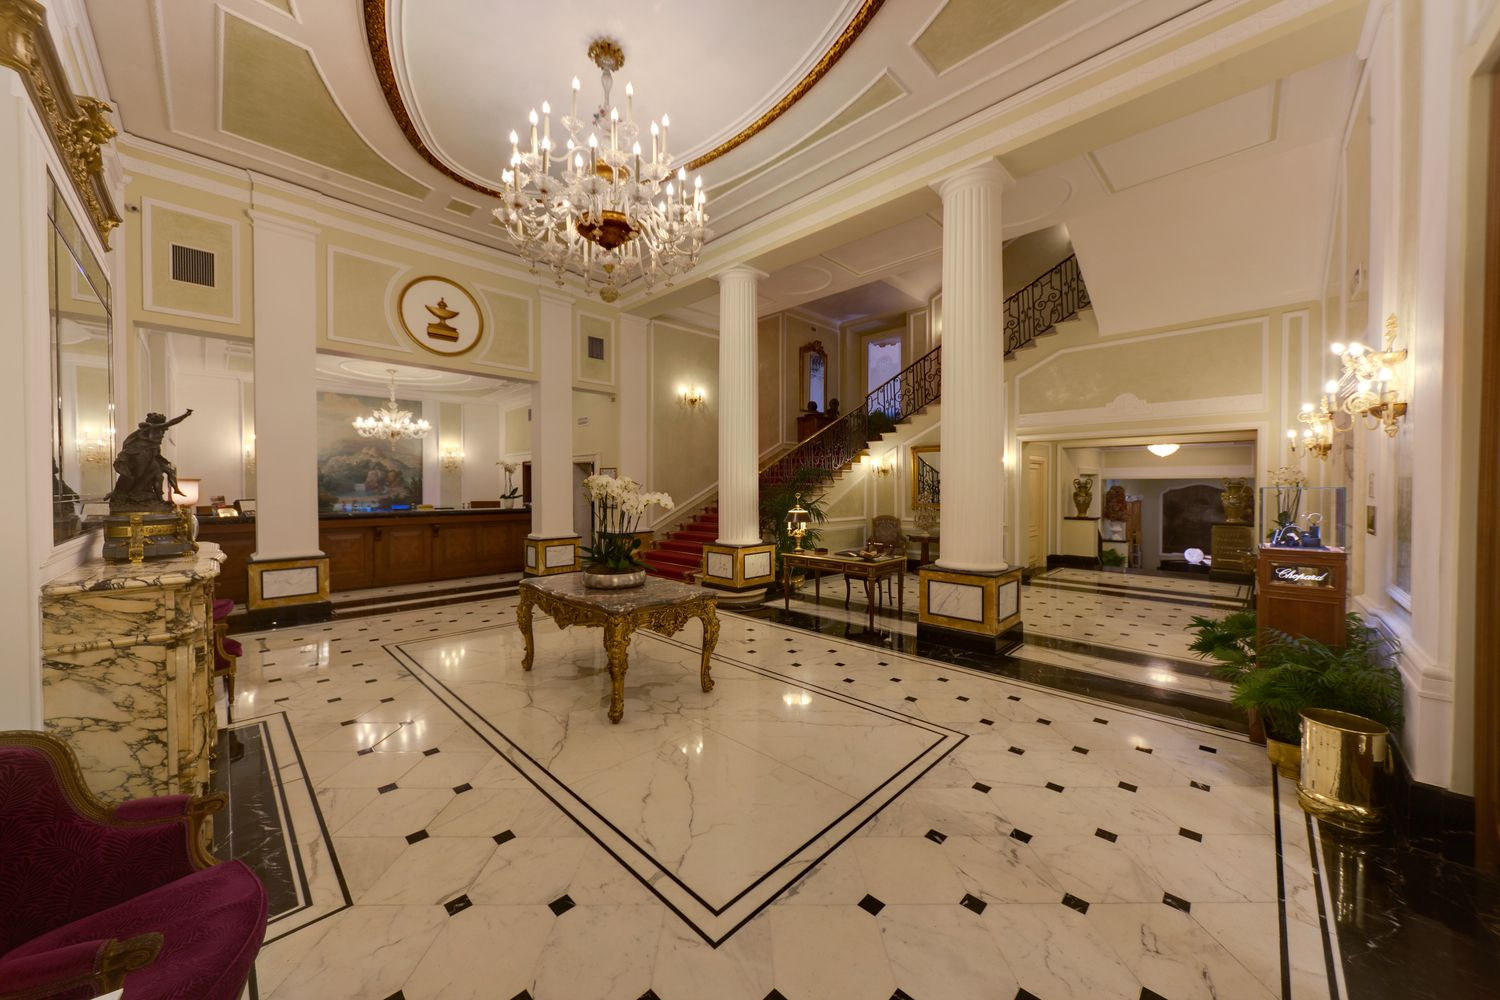 lw mountain hardwood floors inc of what defines a luxury hotel with lw2138 53130607 hall hotel ok colonne new 59df9b51685fbe00119b42f6